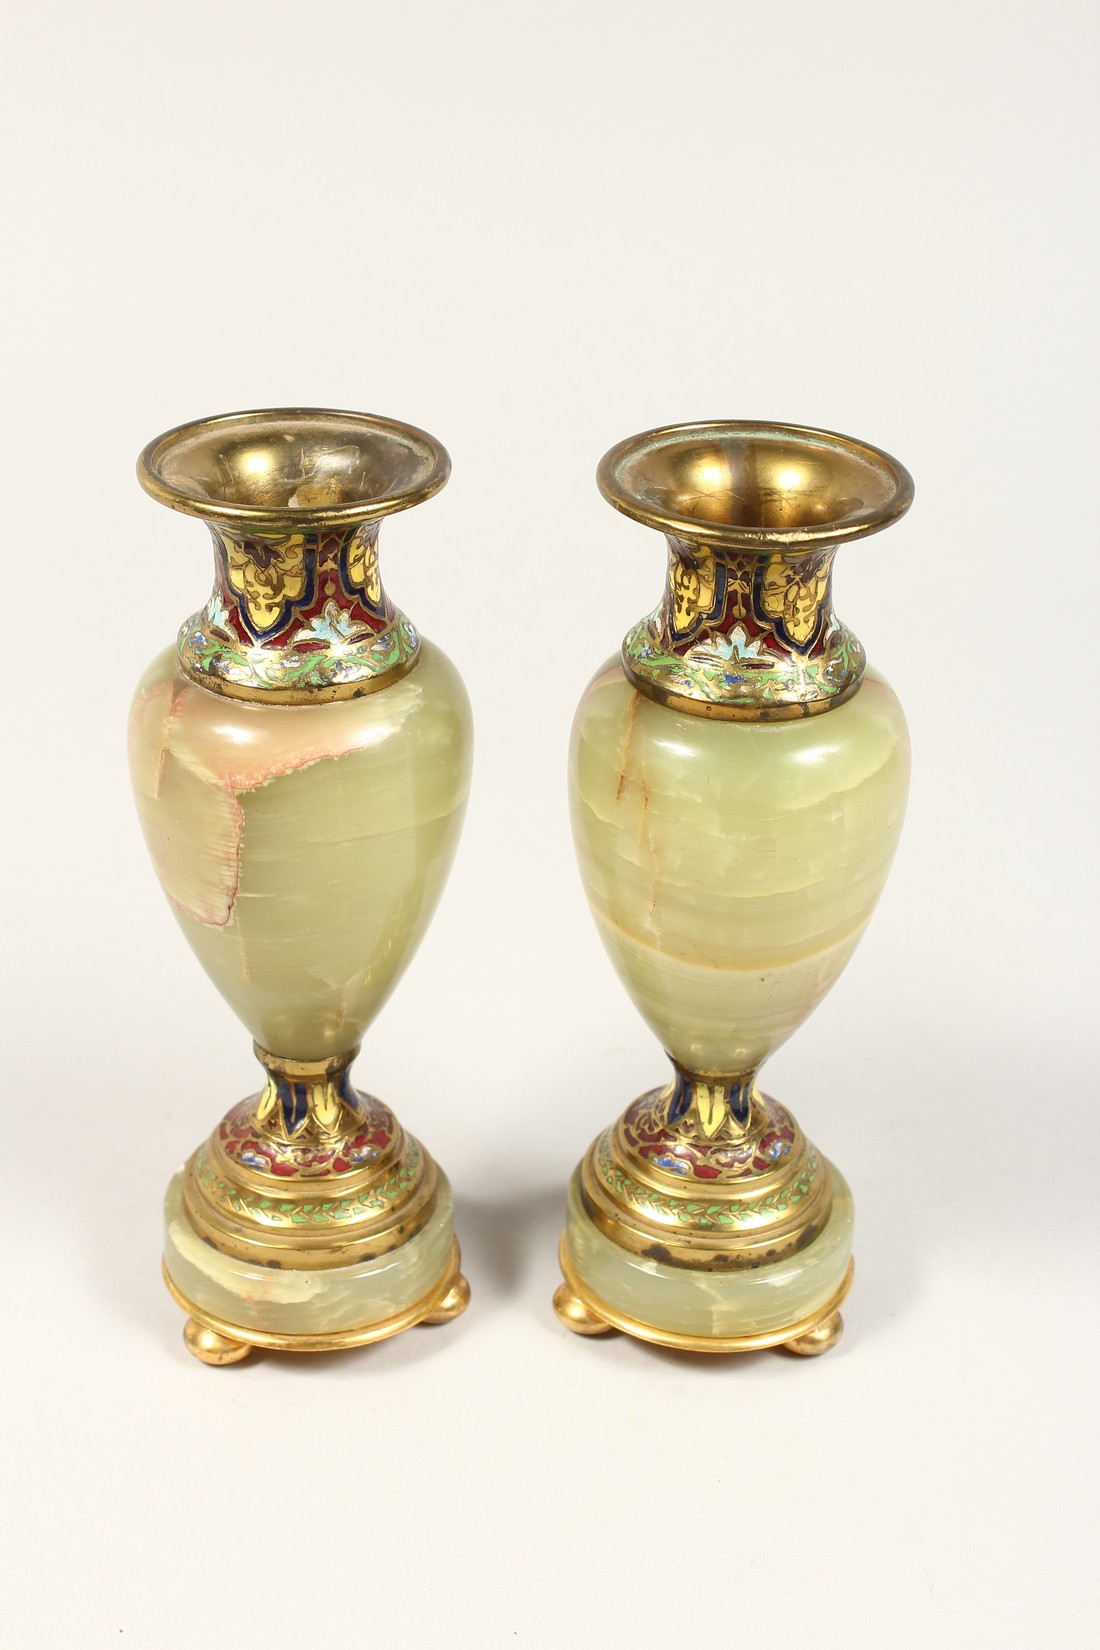 A GOOD SMALL PAIR OF FRENCH CHAMPAGNE ENAMEL AND ONYX VASES. 6.5ins high. - Image 3 of 5